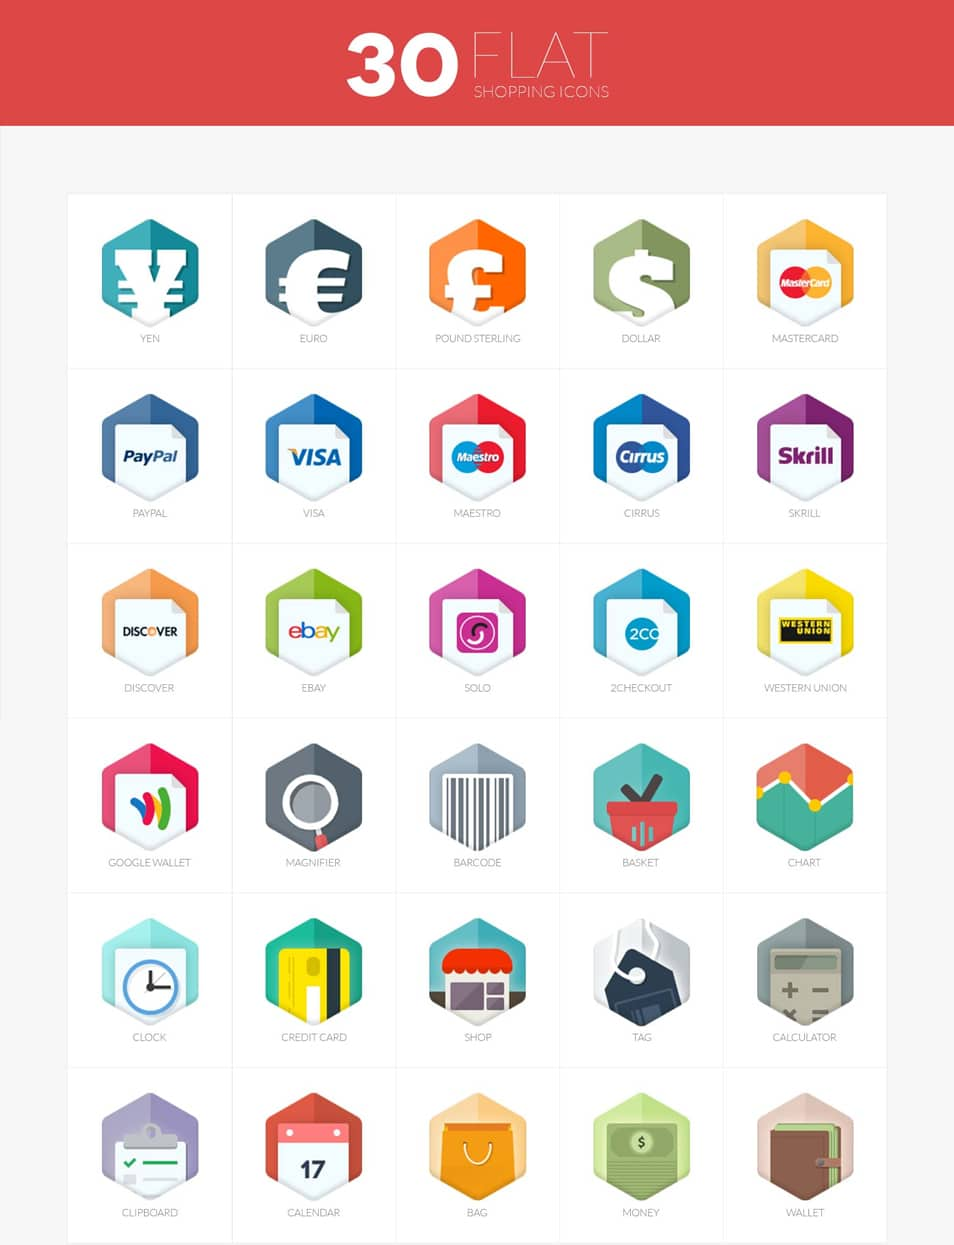 30 flat shopping icons